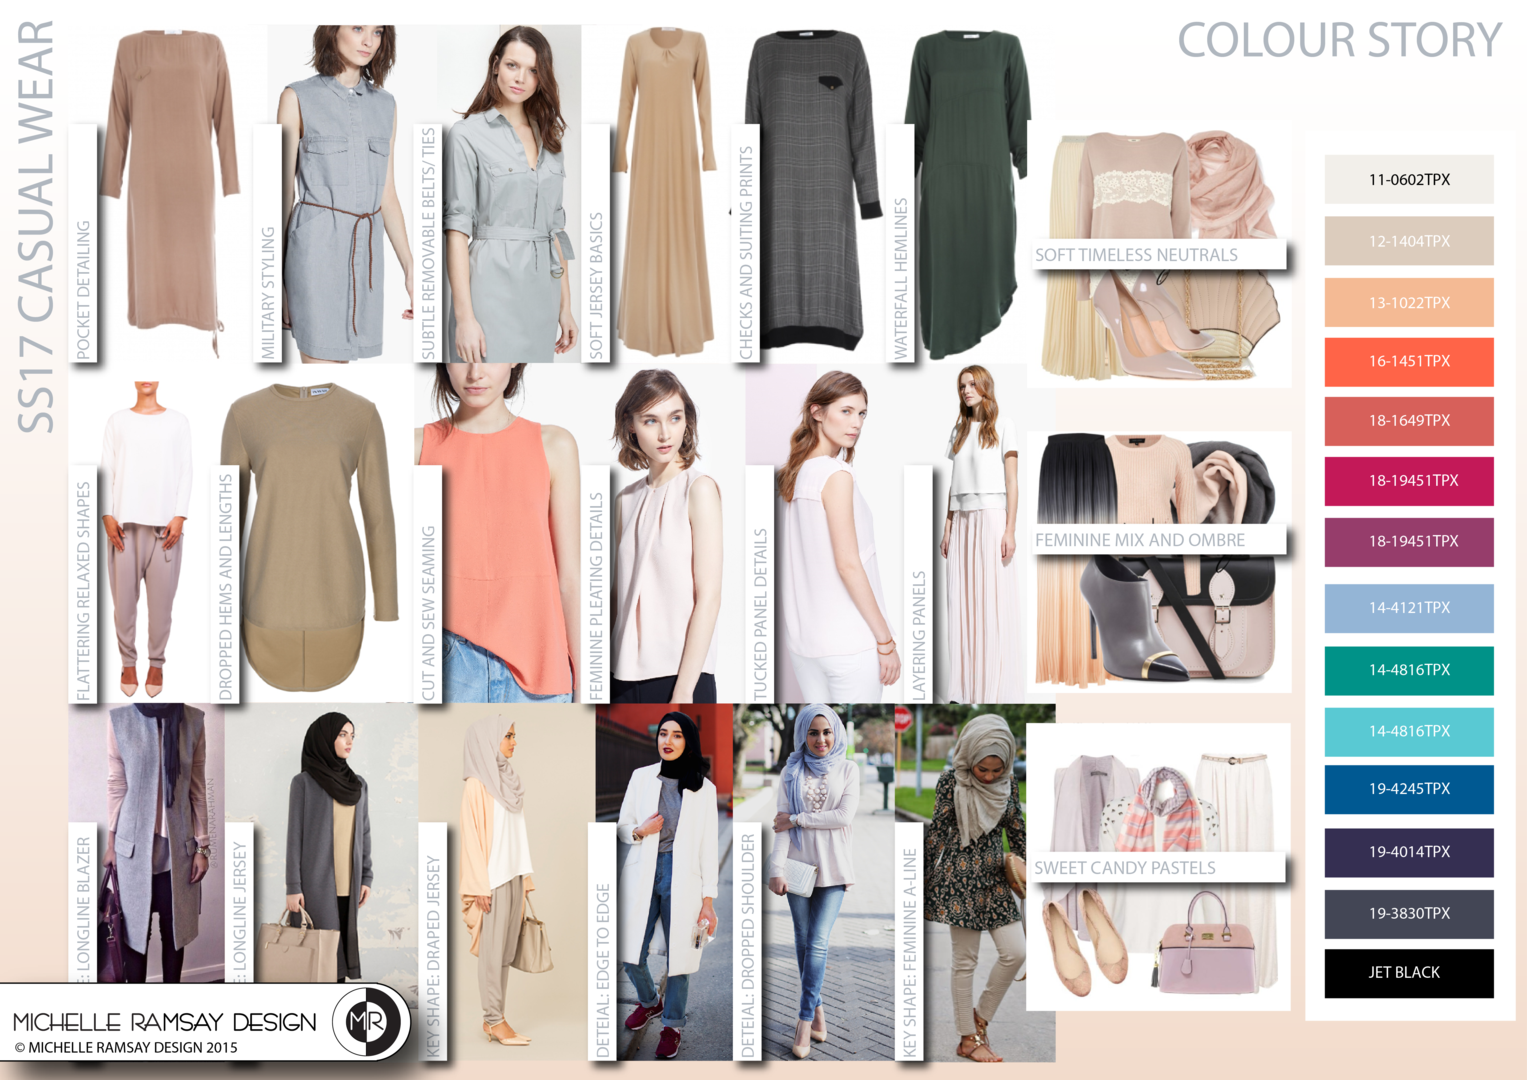 Fashion consultancy fashion today Fashion design consultant